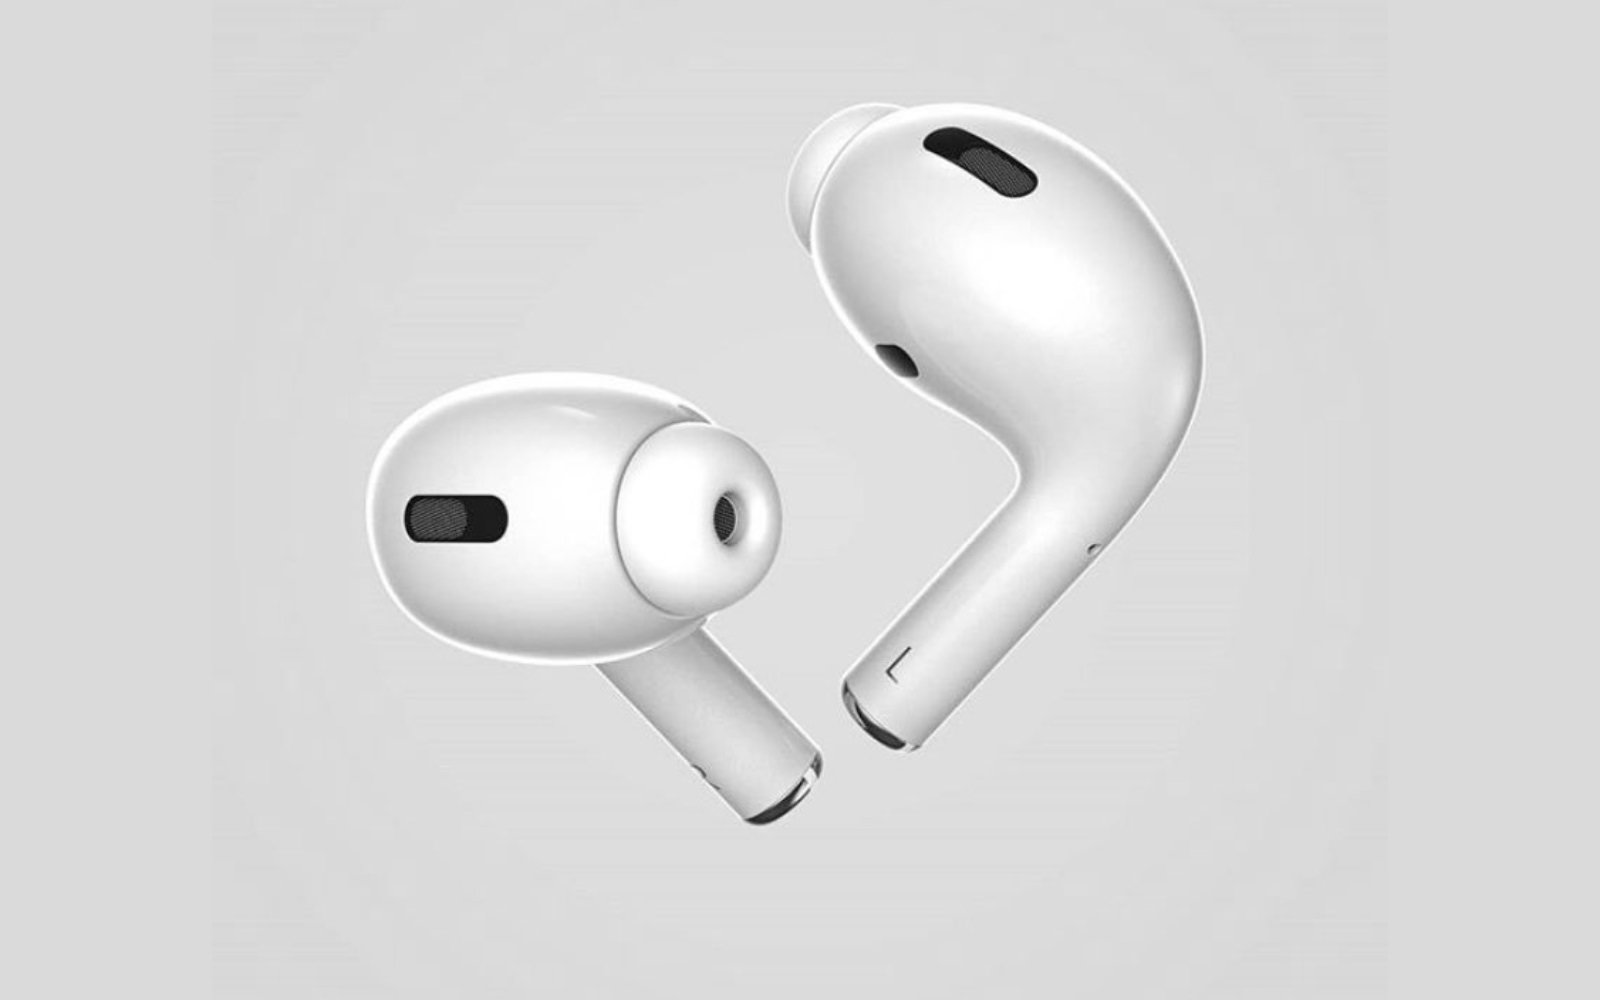 AirPods Pro Release Next Tuesday or Wednesday